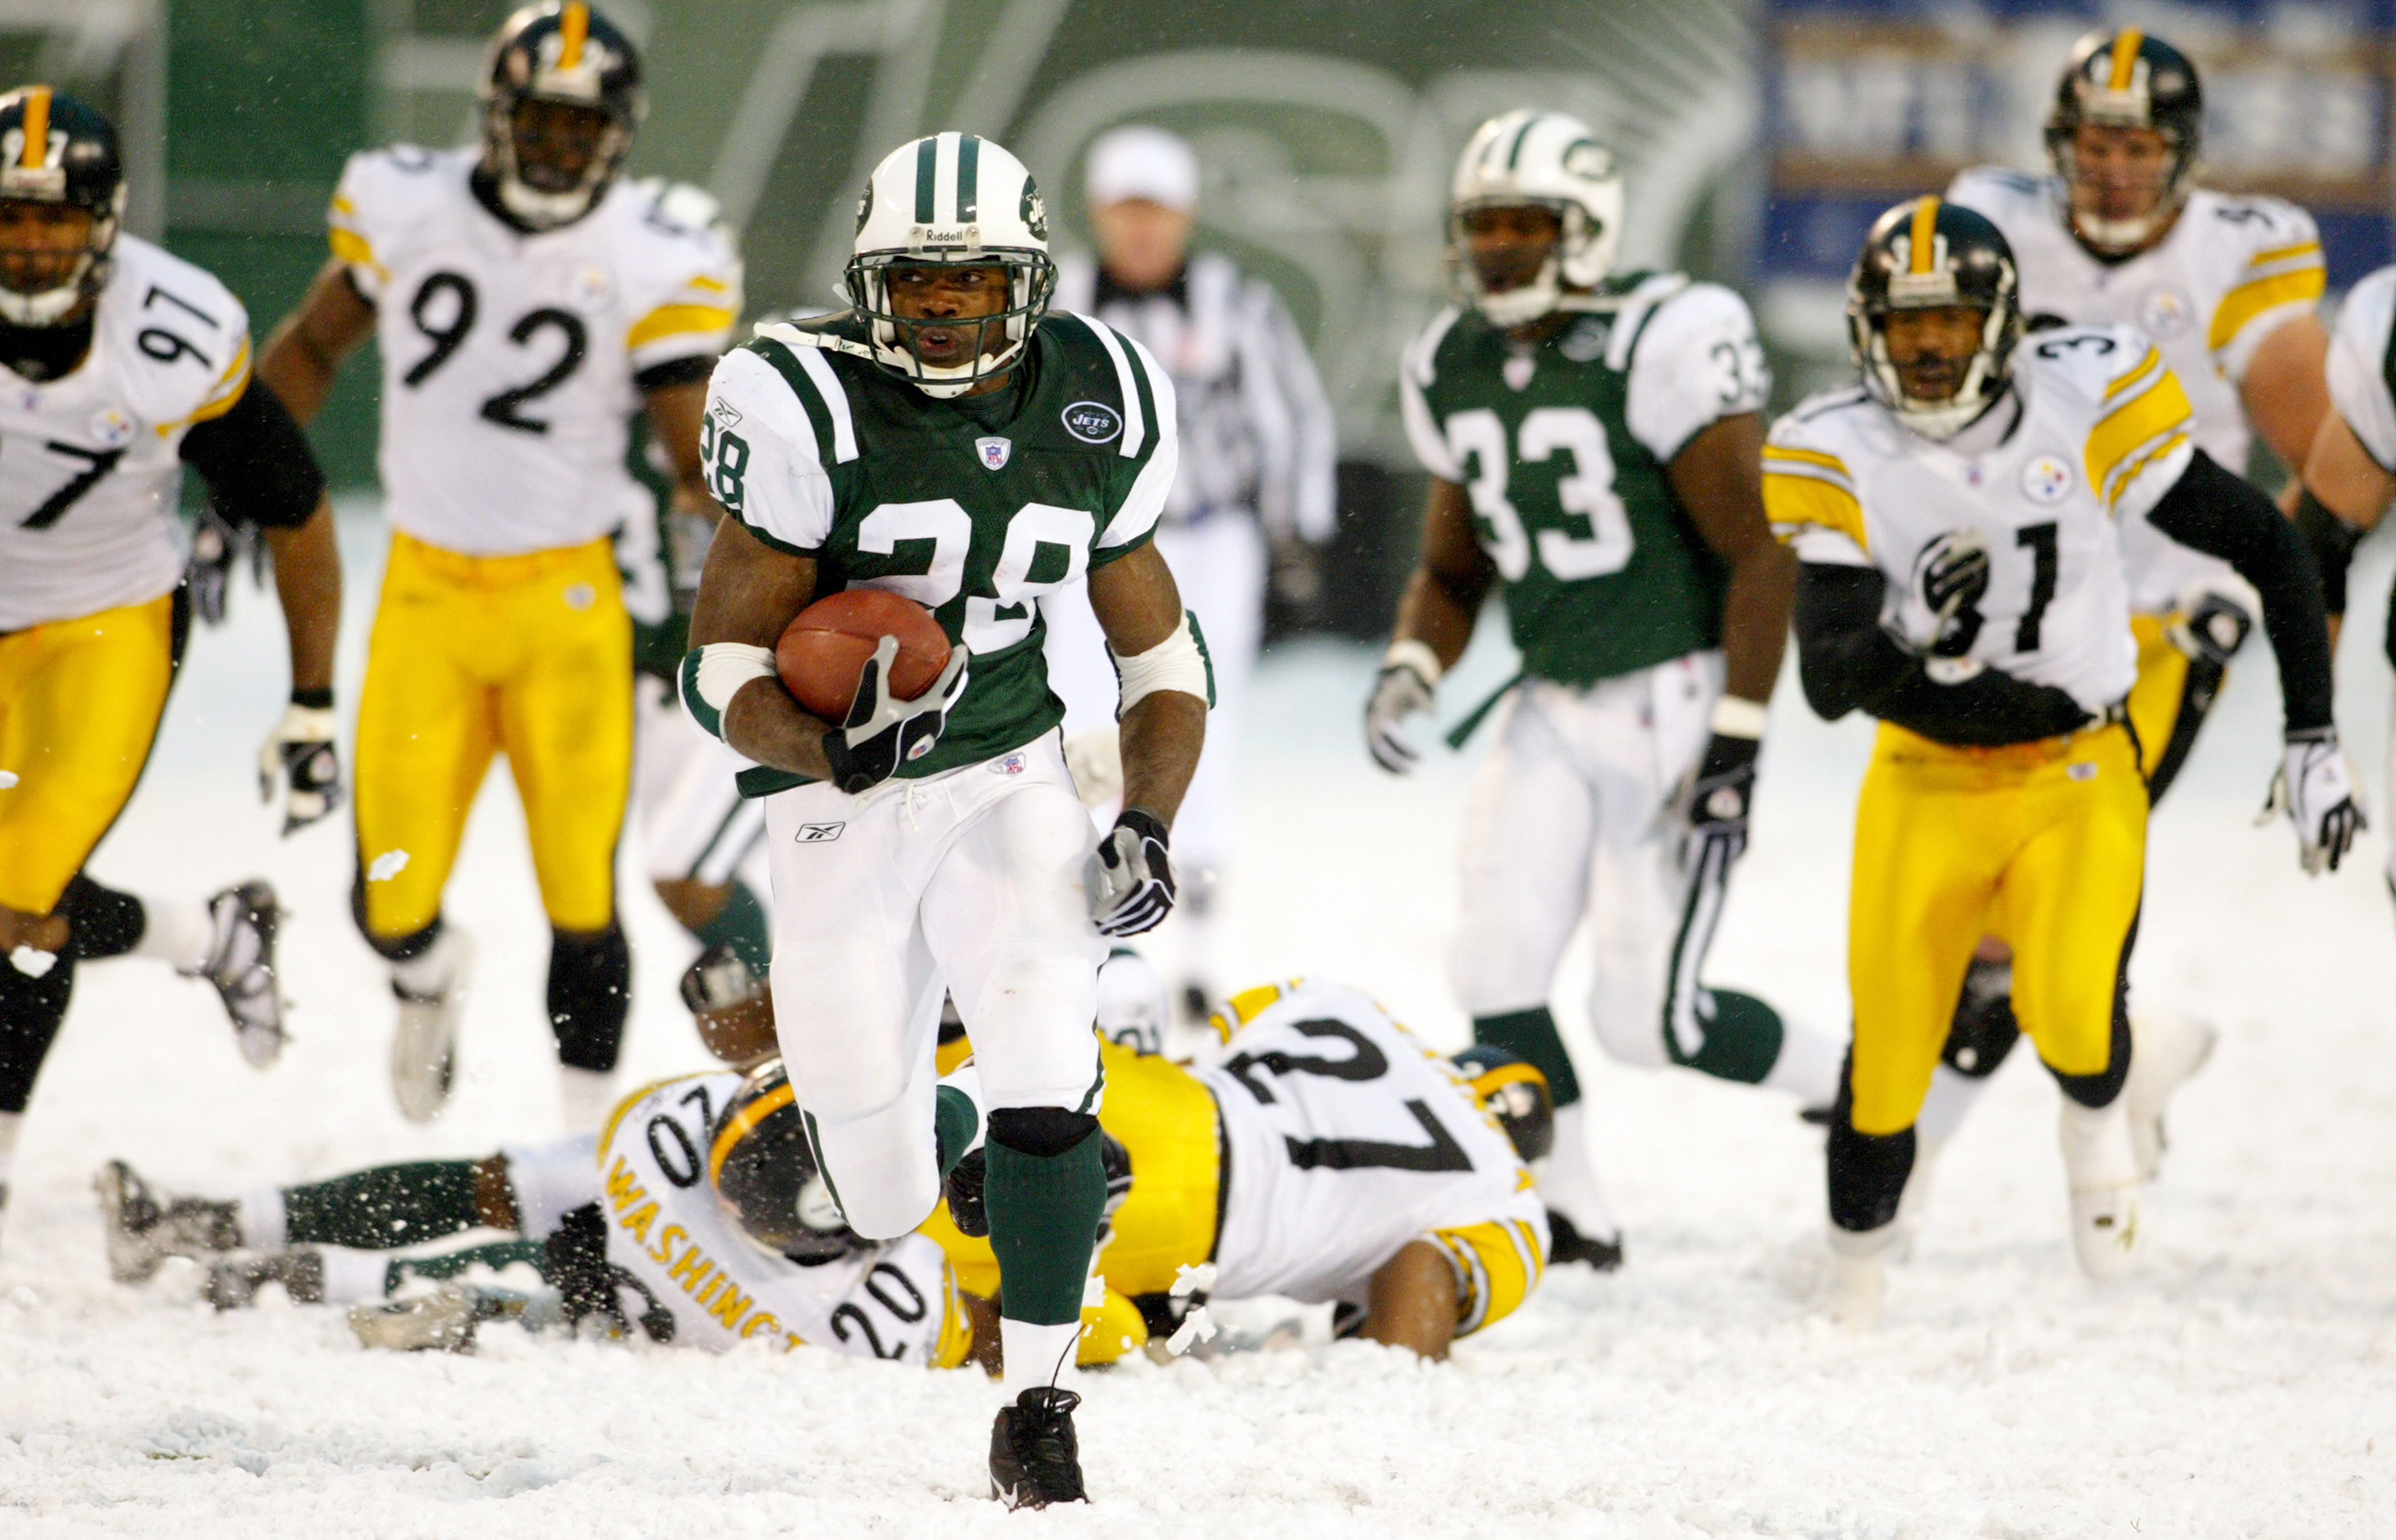 The New York Jets' Curtis Martin leaves a field of Pittsburg